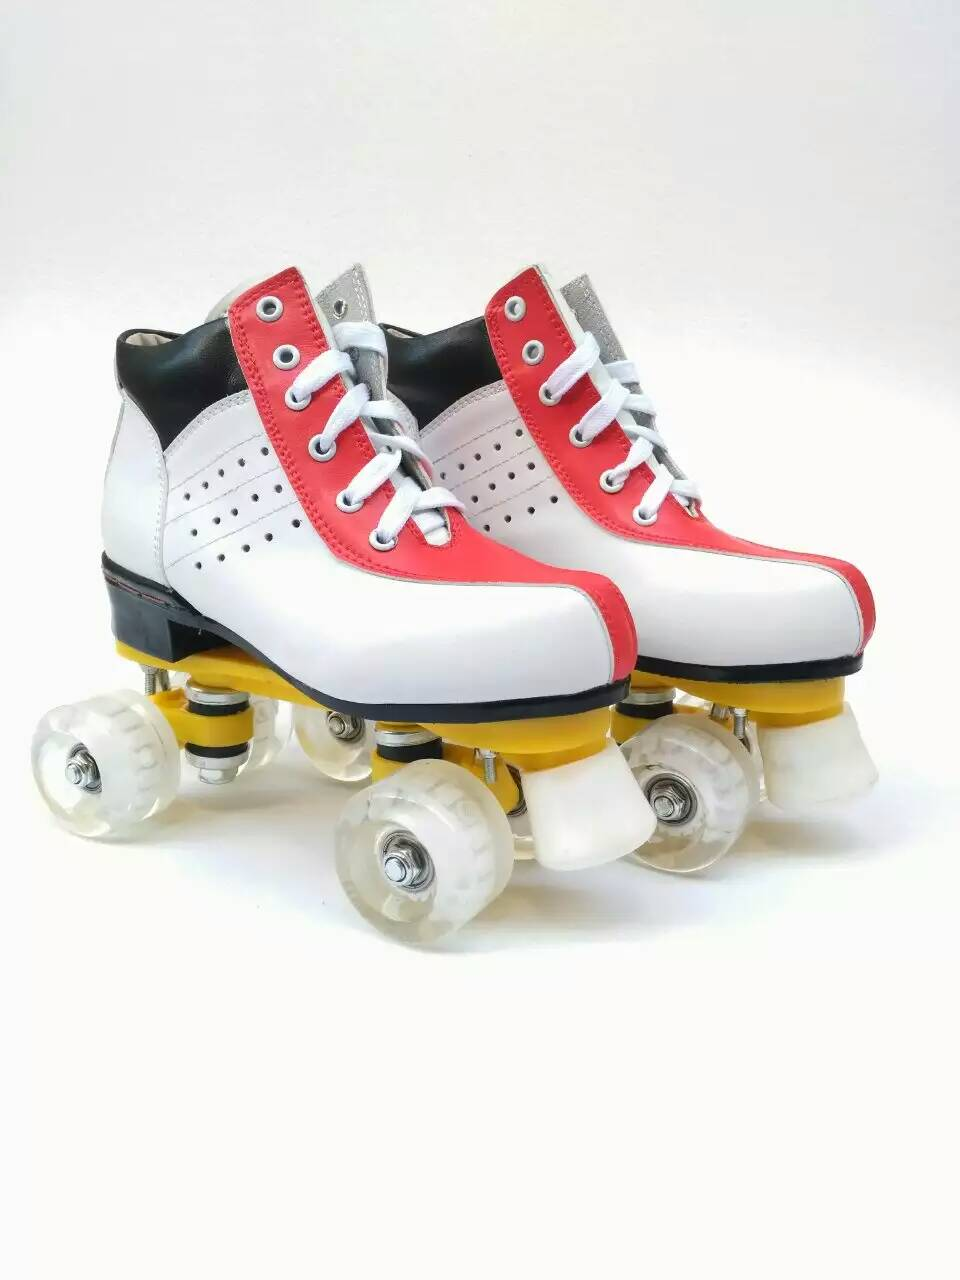 2016 New style arrival Wholesale Price 4 Wheel Speed Roller Skates Shoes free shipping